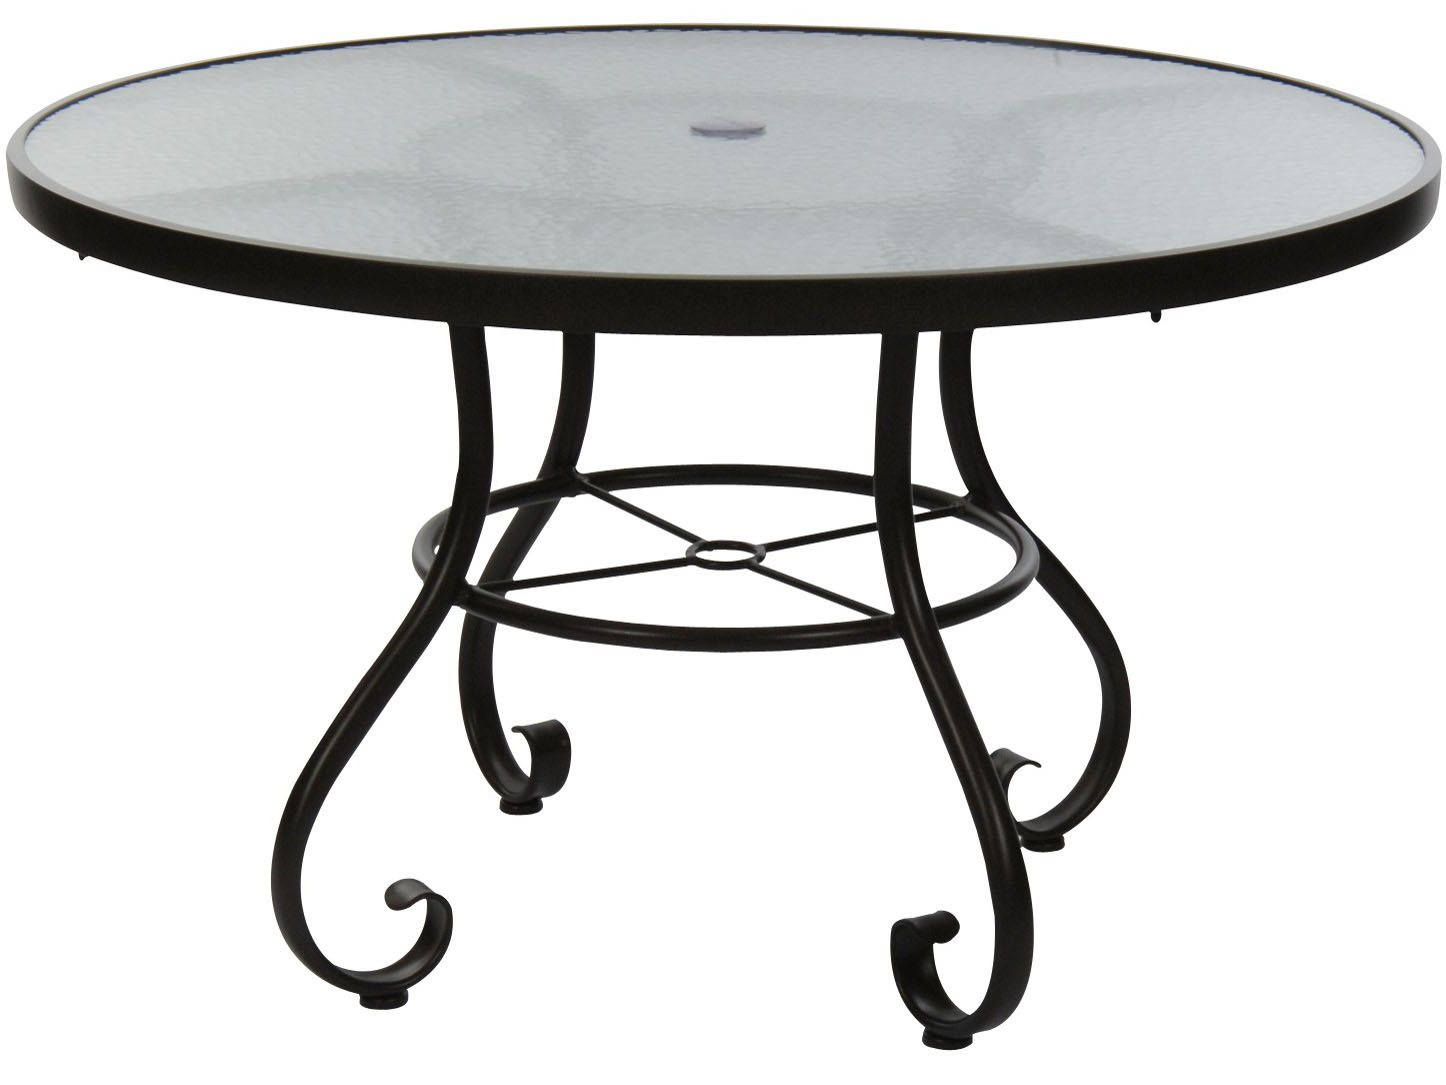 Woodard ramsgate aluminum 36 round obscure glass top with - Aluminium picnic table with umbrella ...